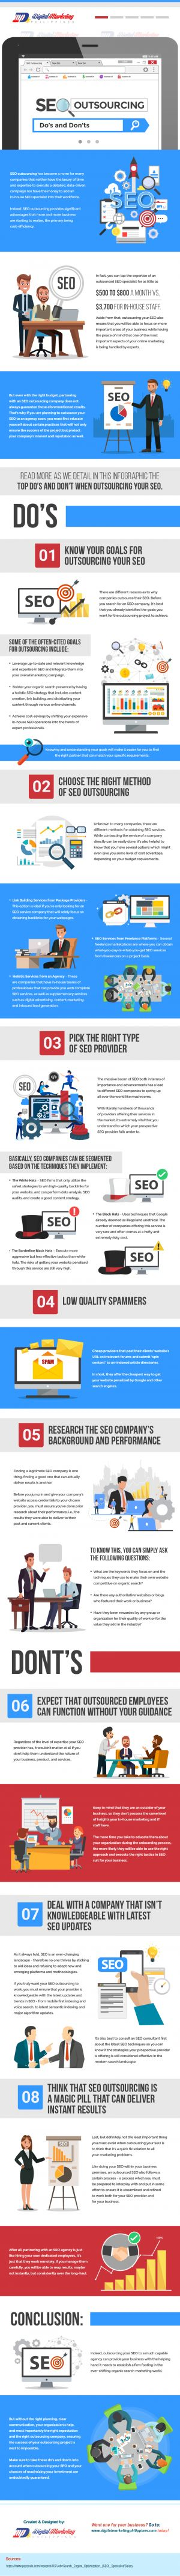 SEO Outsourcing - Dos and Don'ts